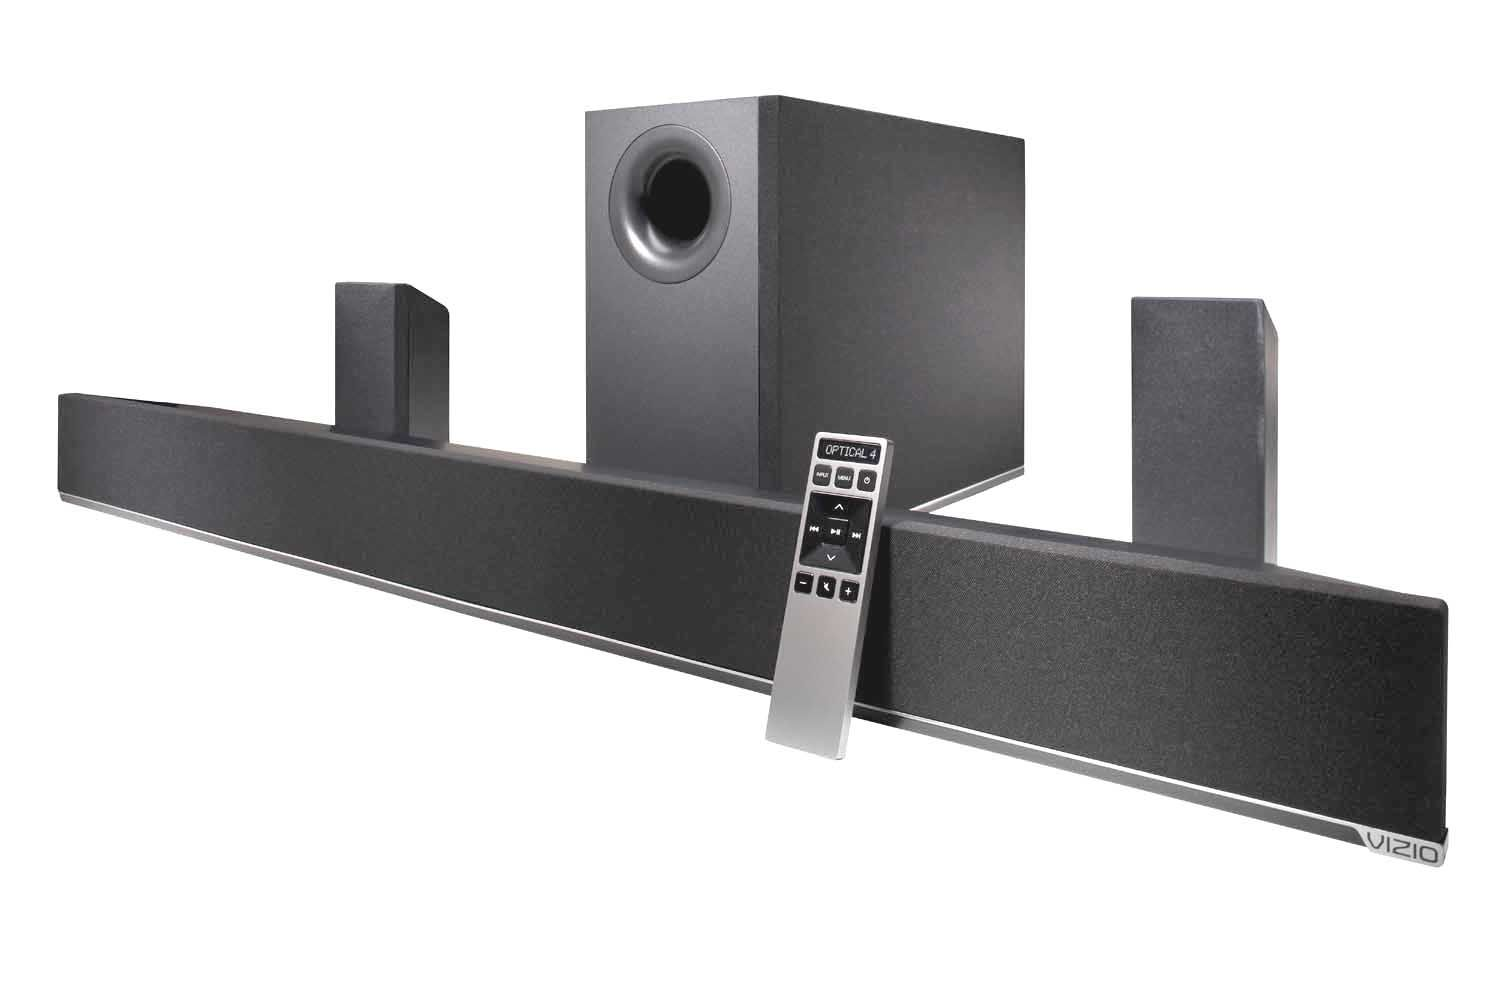 lennox home theater system. hands on with vizio s4251w-b4 5.1 channel sound bar system. home theater room lennox system